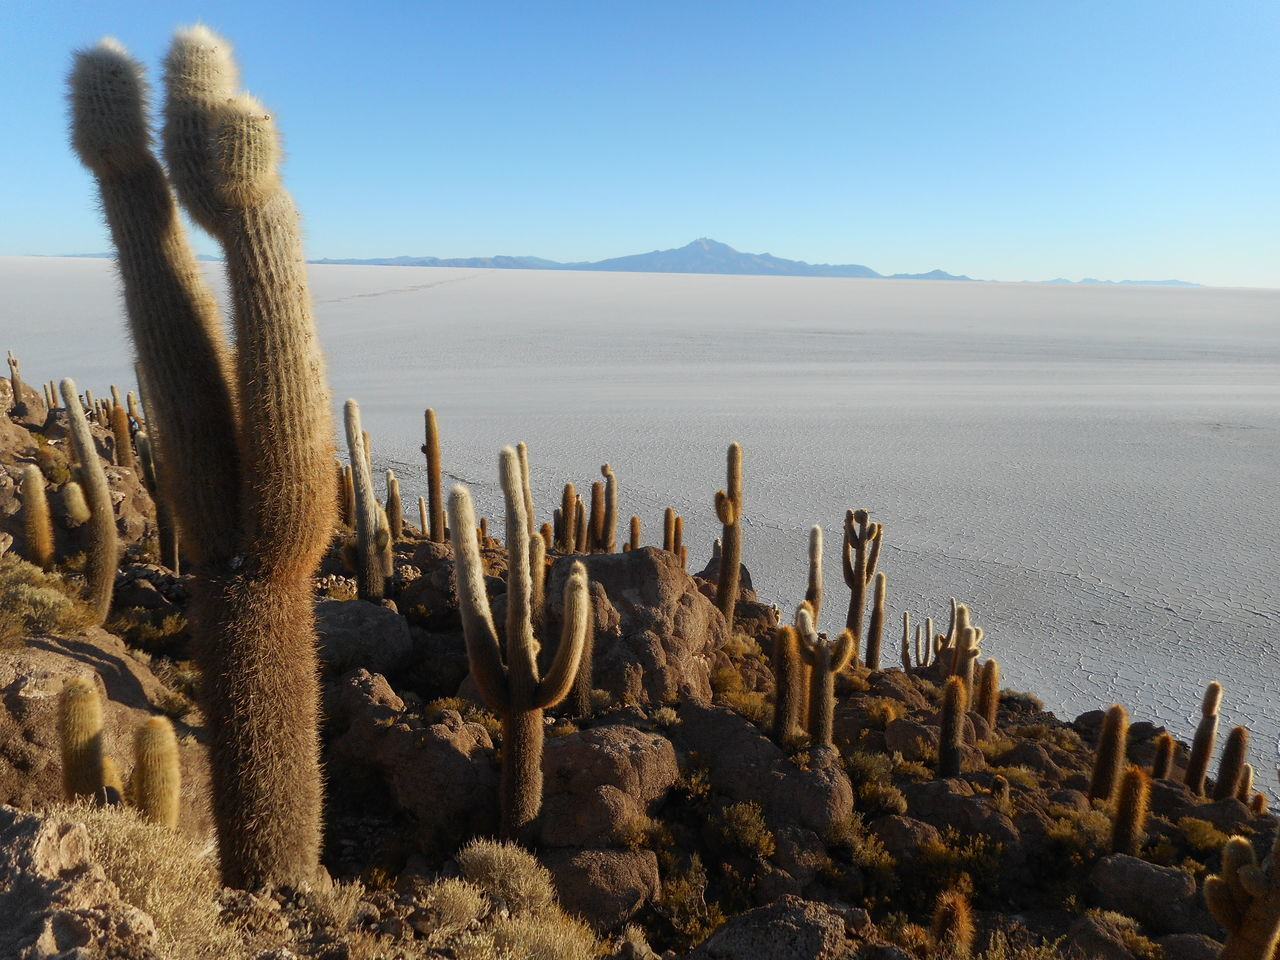 Arid Climate Beauty In Nature Blue Cactus Clear Sky Day Desert Growth Landscape Nature No People Outdoors Plant Salt Flat Sand Scenics Sky Succulent Plant Surreal Landscapes Tranquil Scene